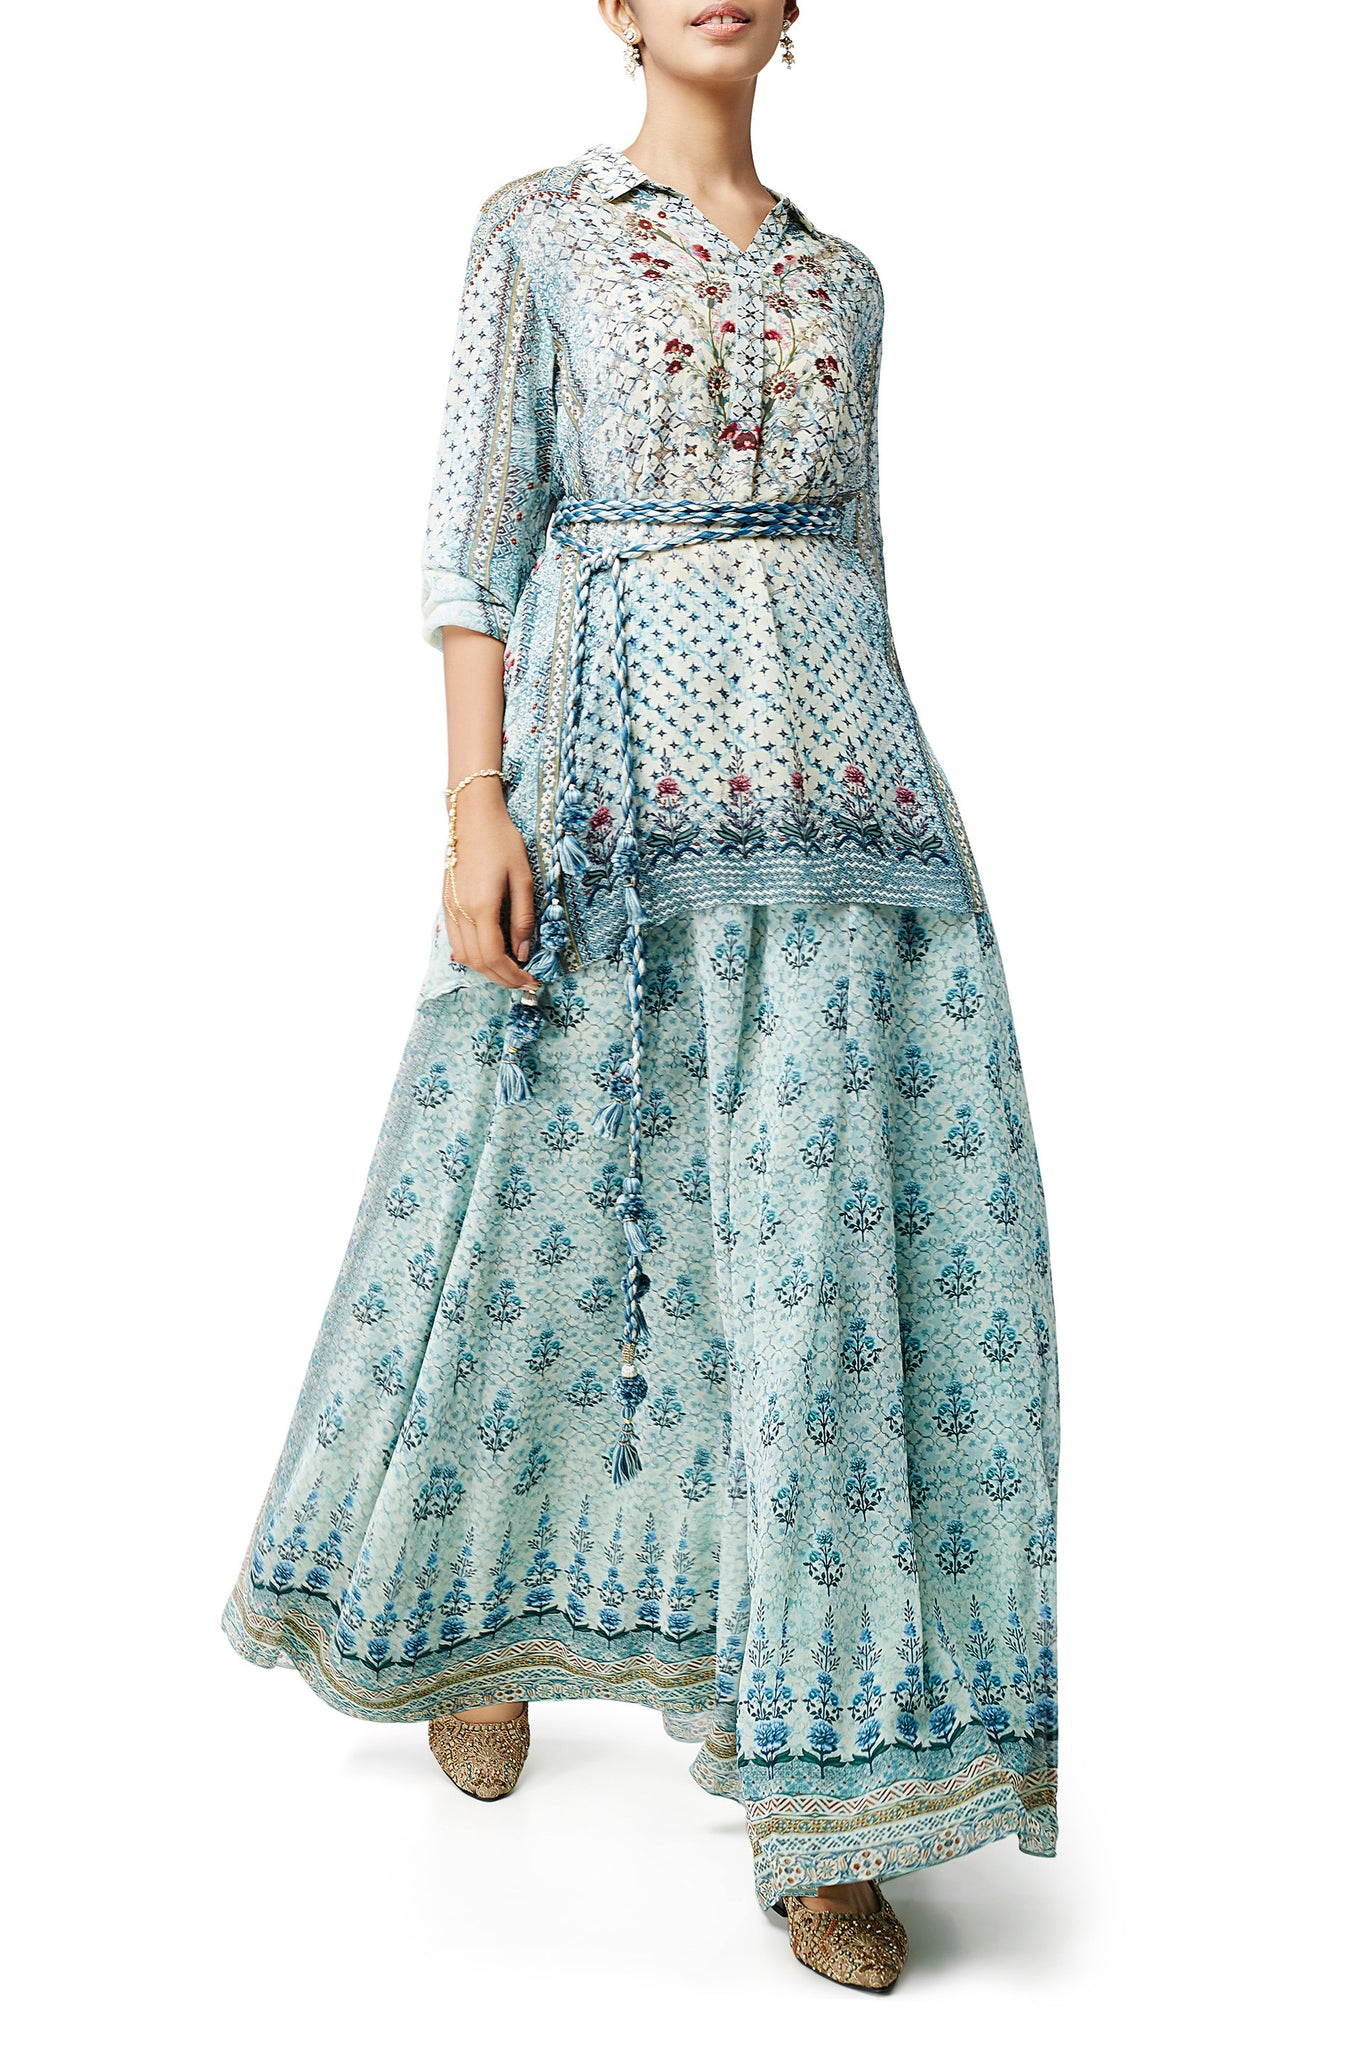 Designer Dress From Anita Dongre Collection